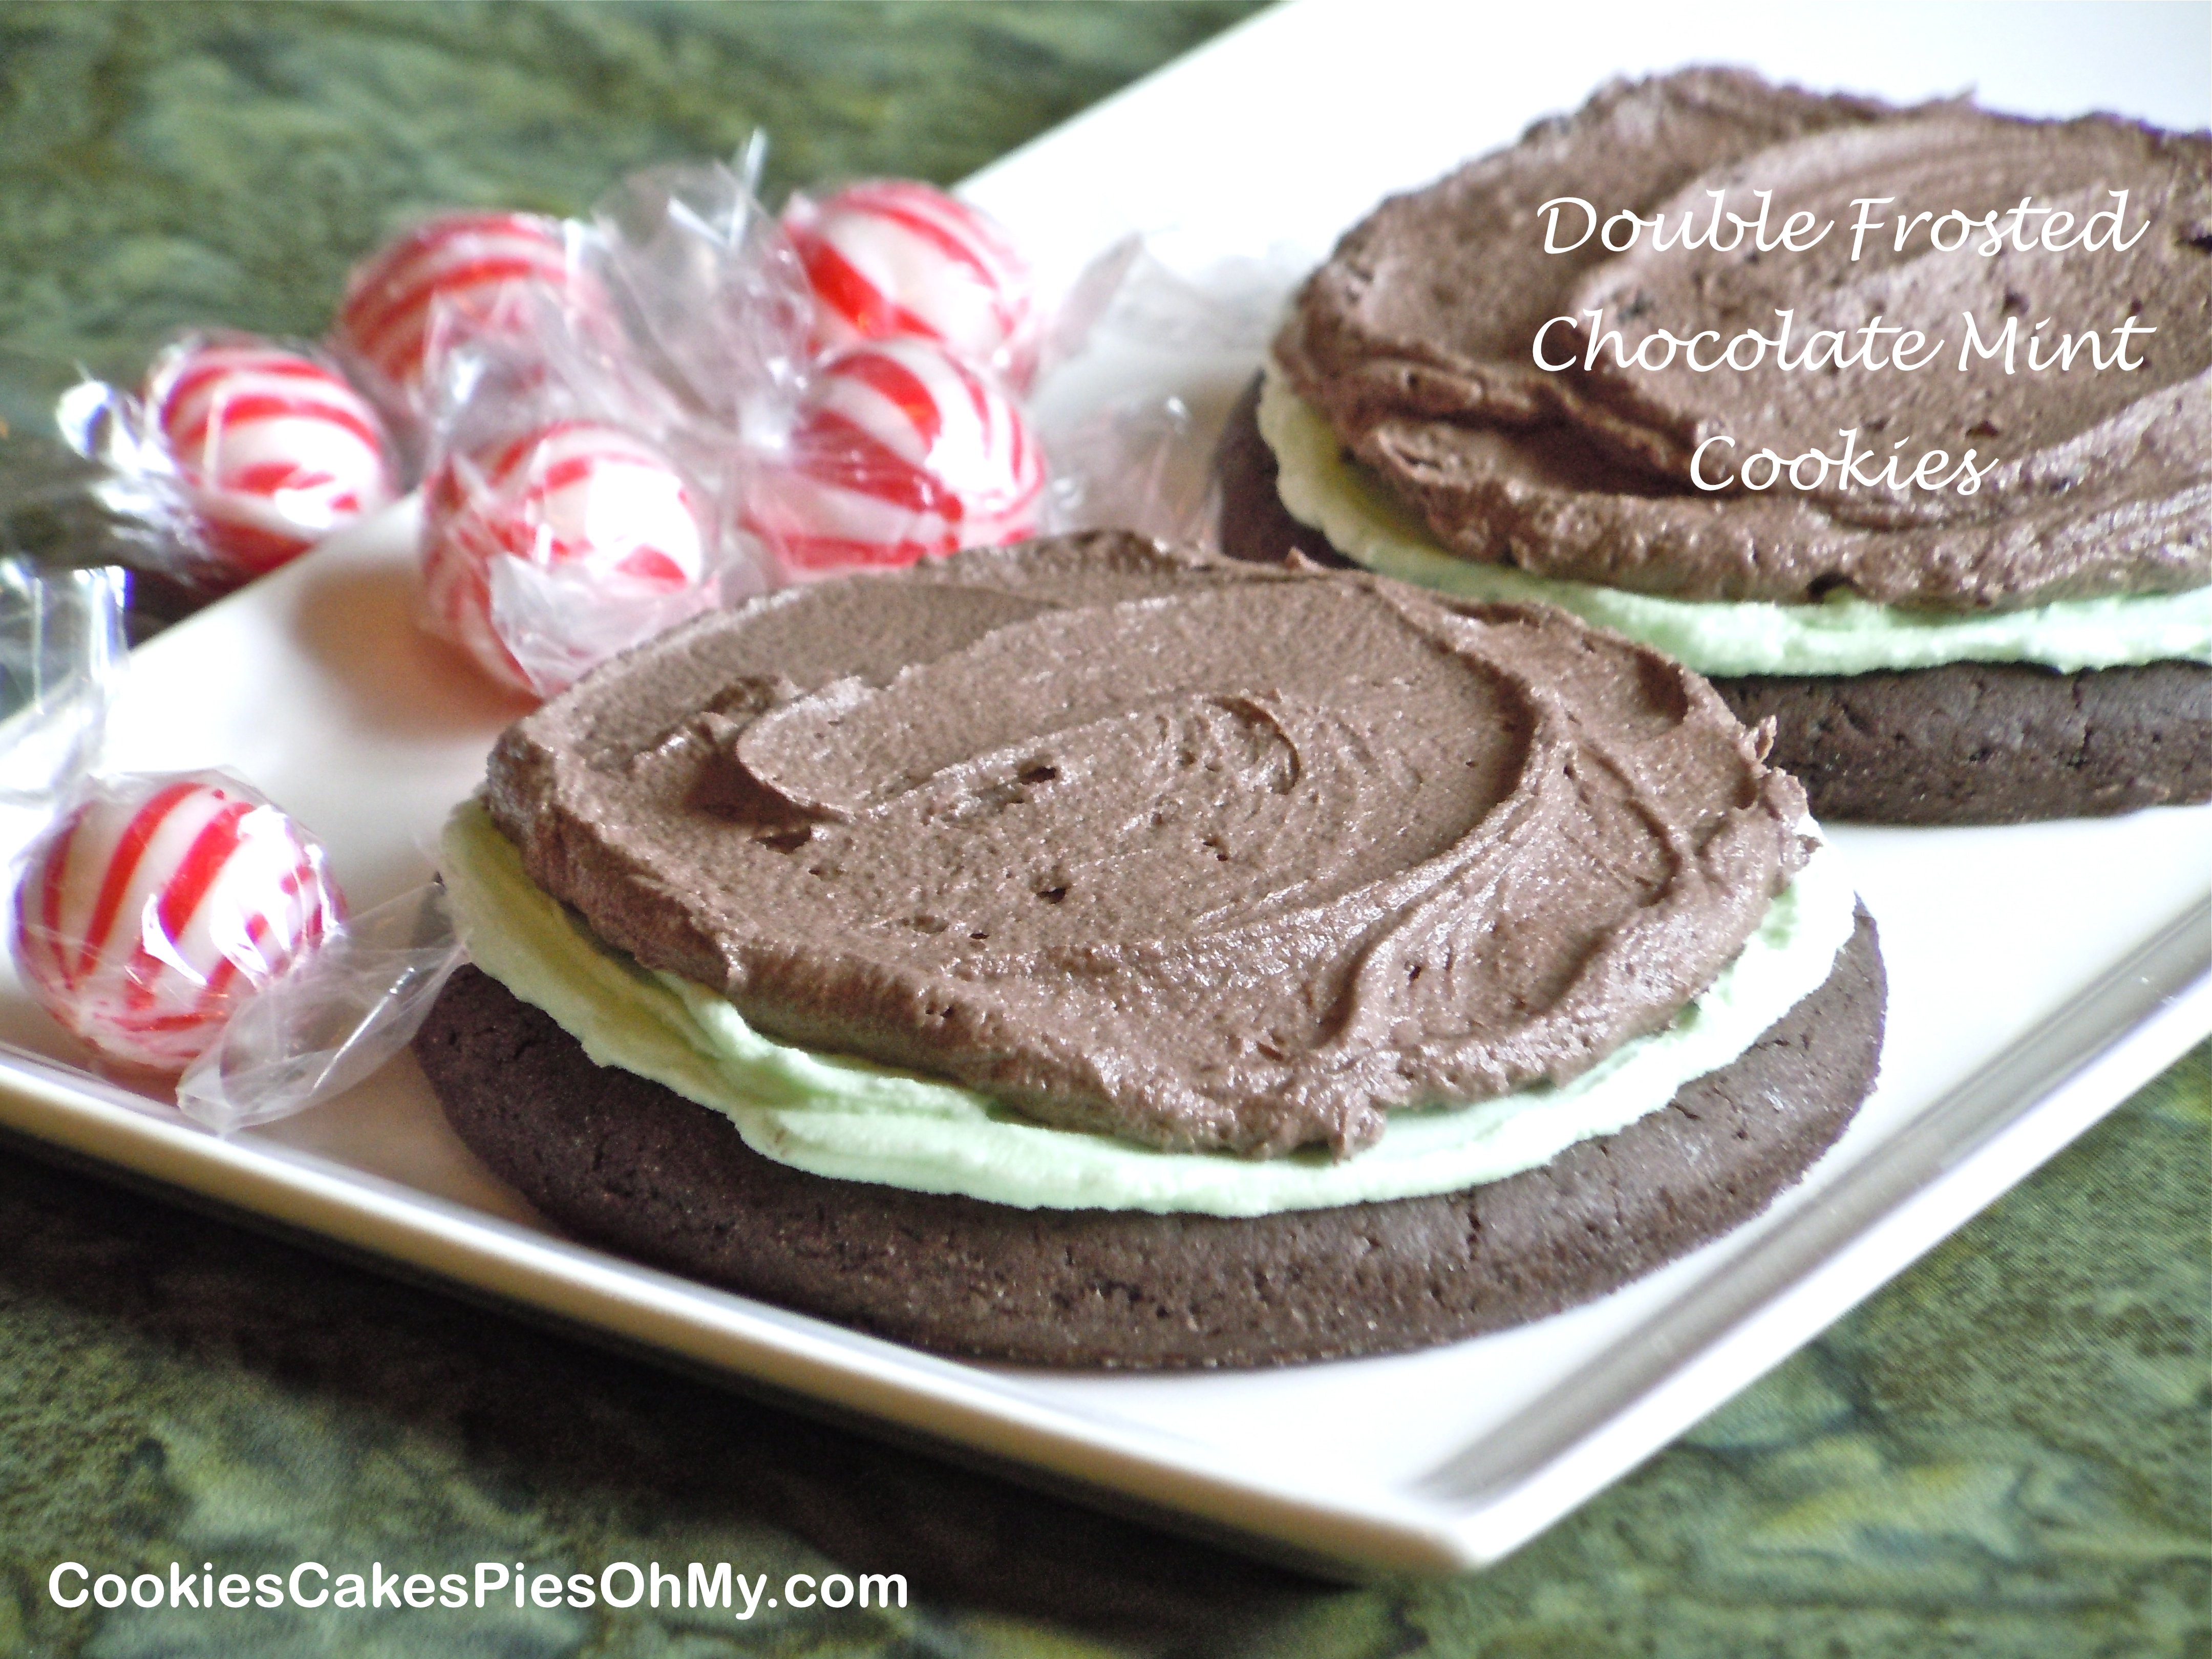 Two Years Ago: Frosted Chocolate Mint Cookies